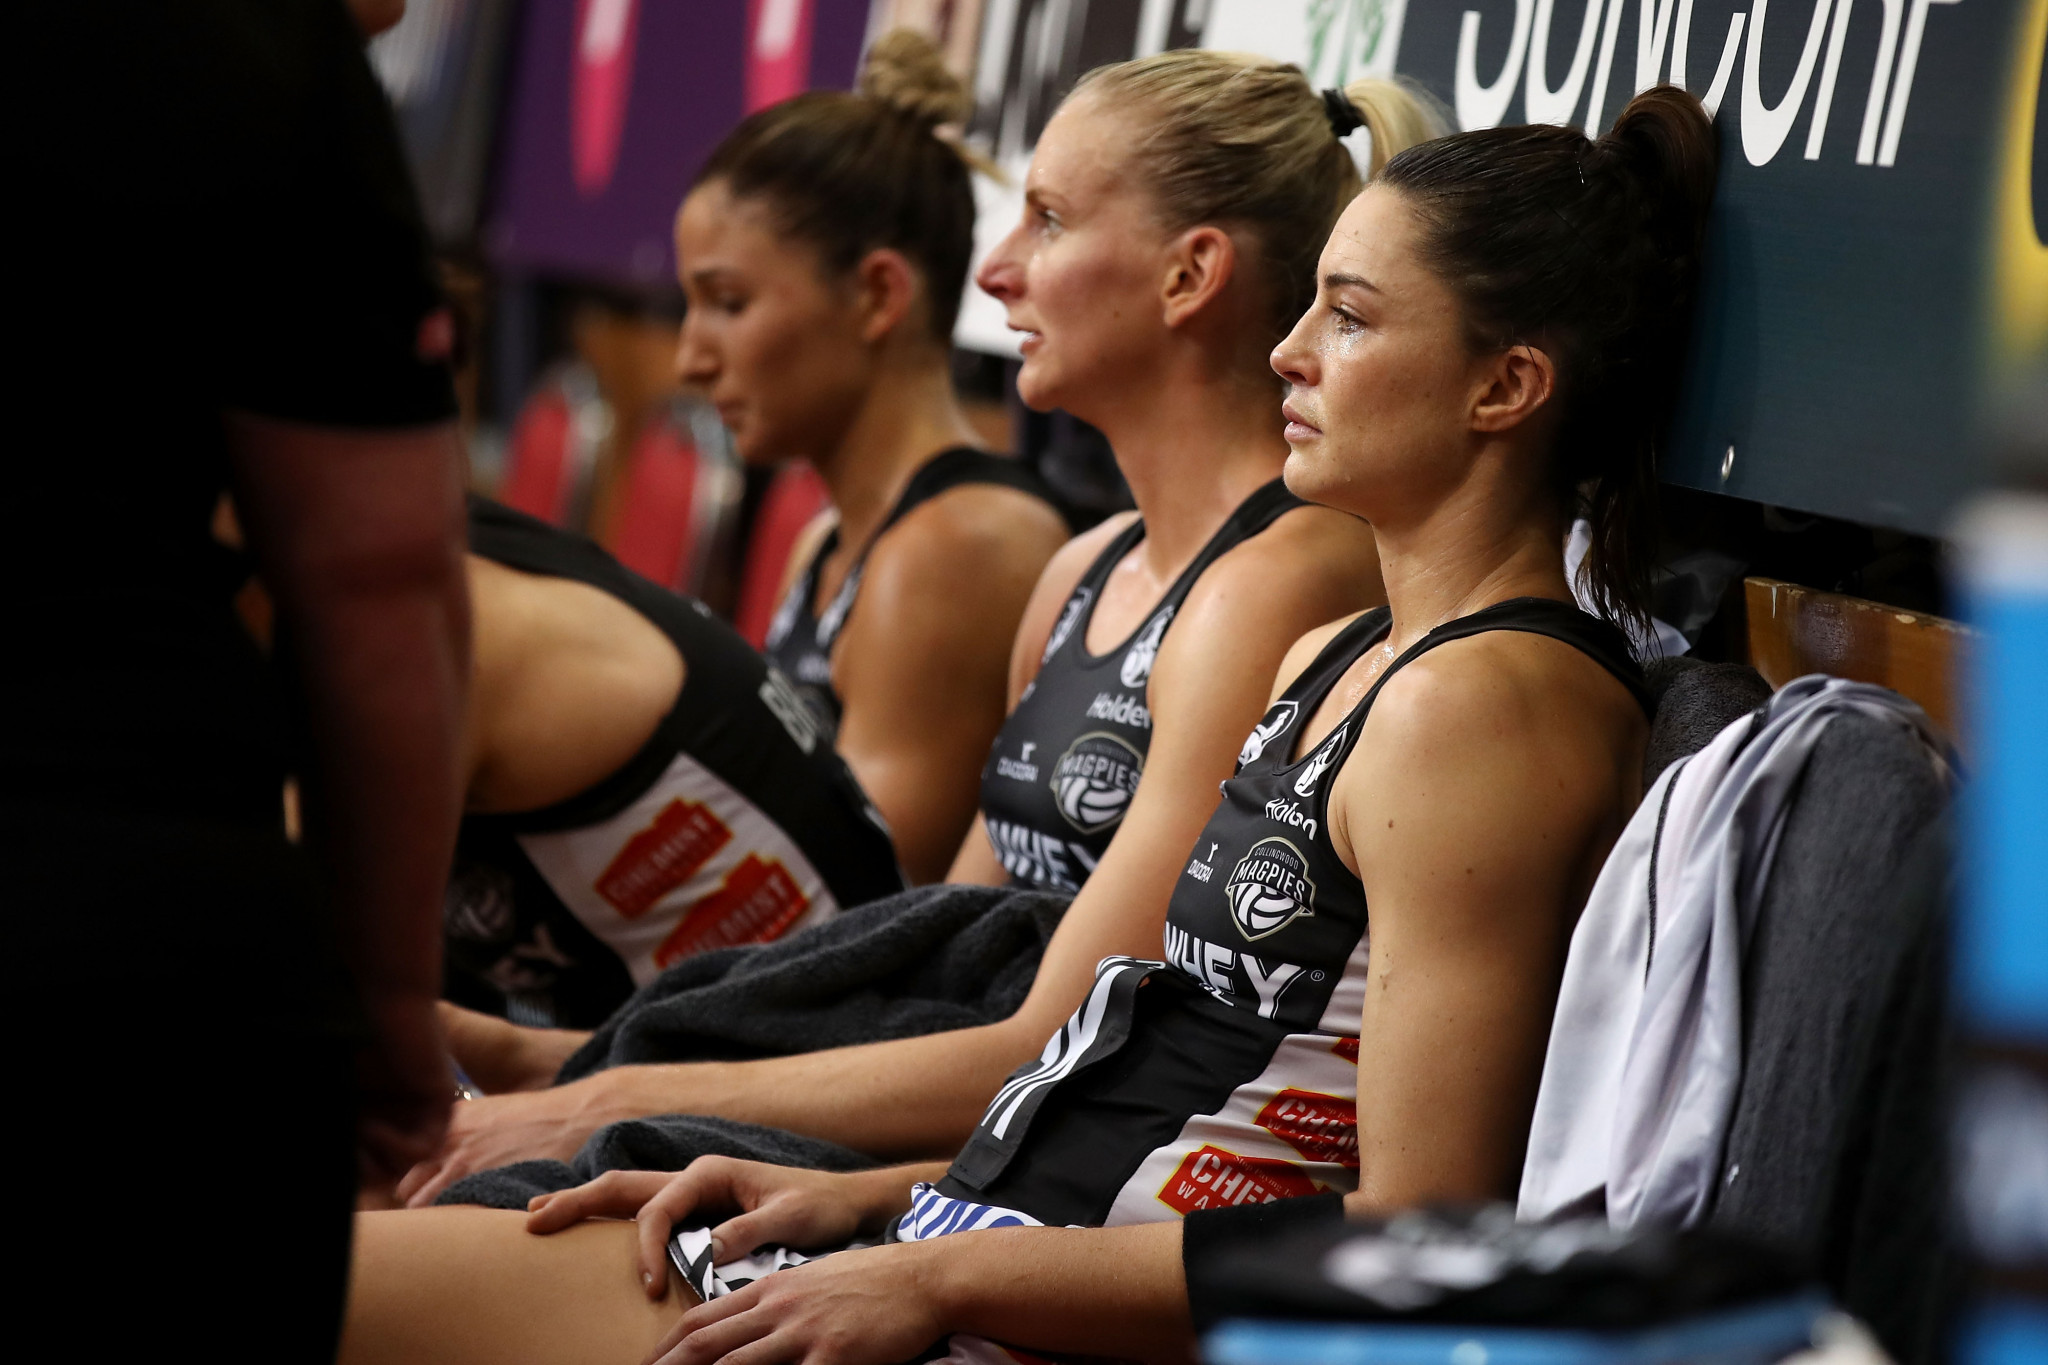 Latyon returns to Australia netball squad for final Gold Coast 2018 warm-up but former captain missing